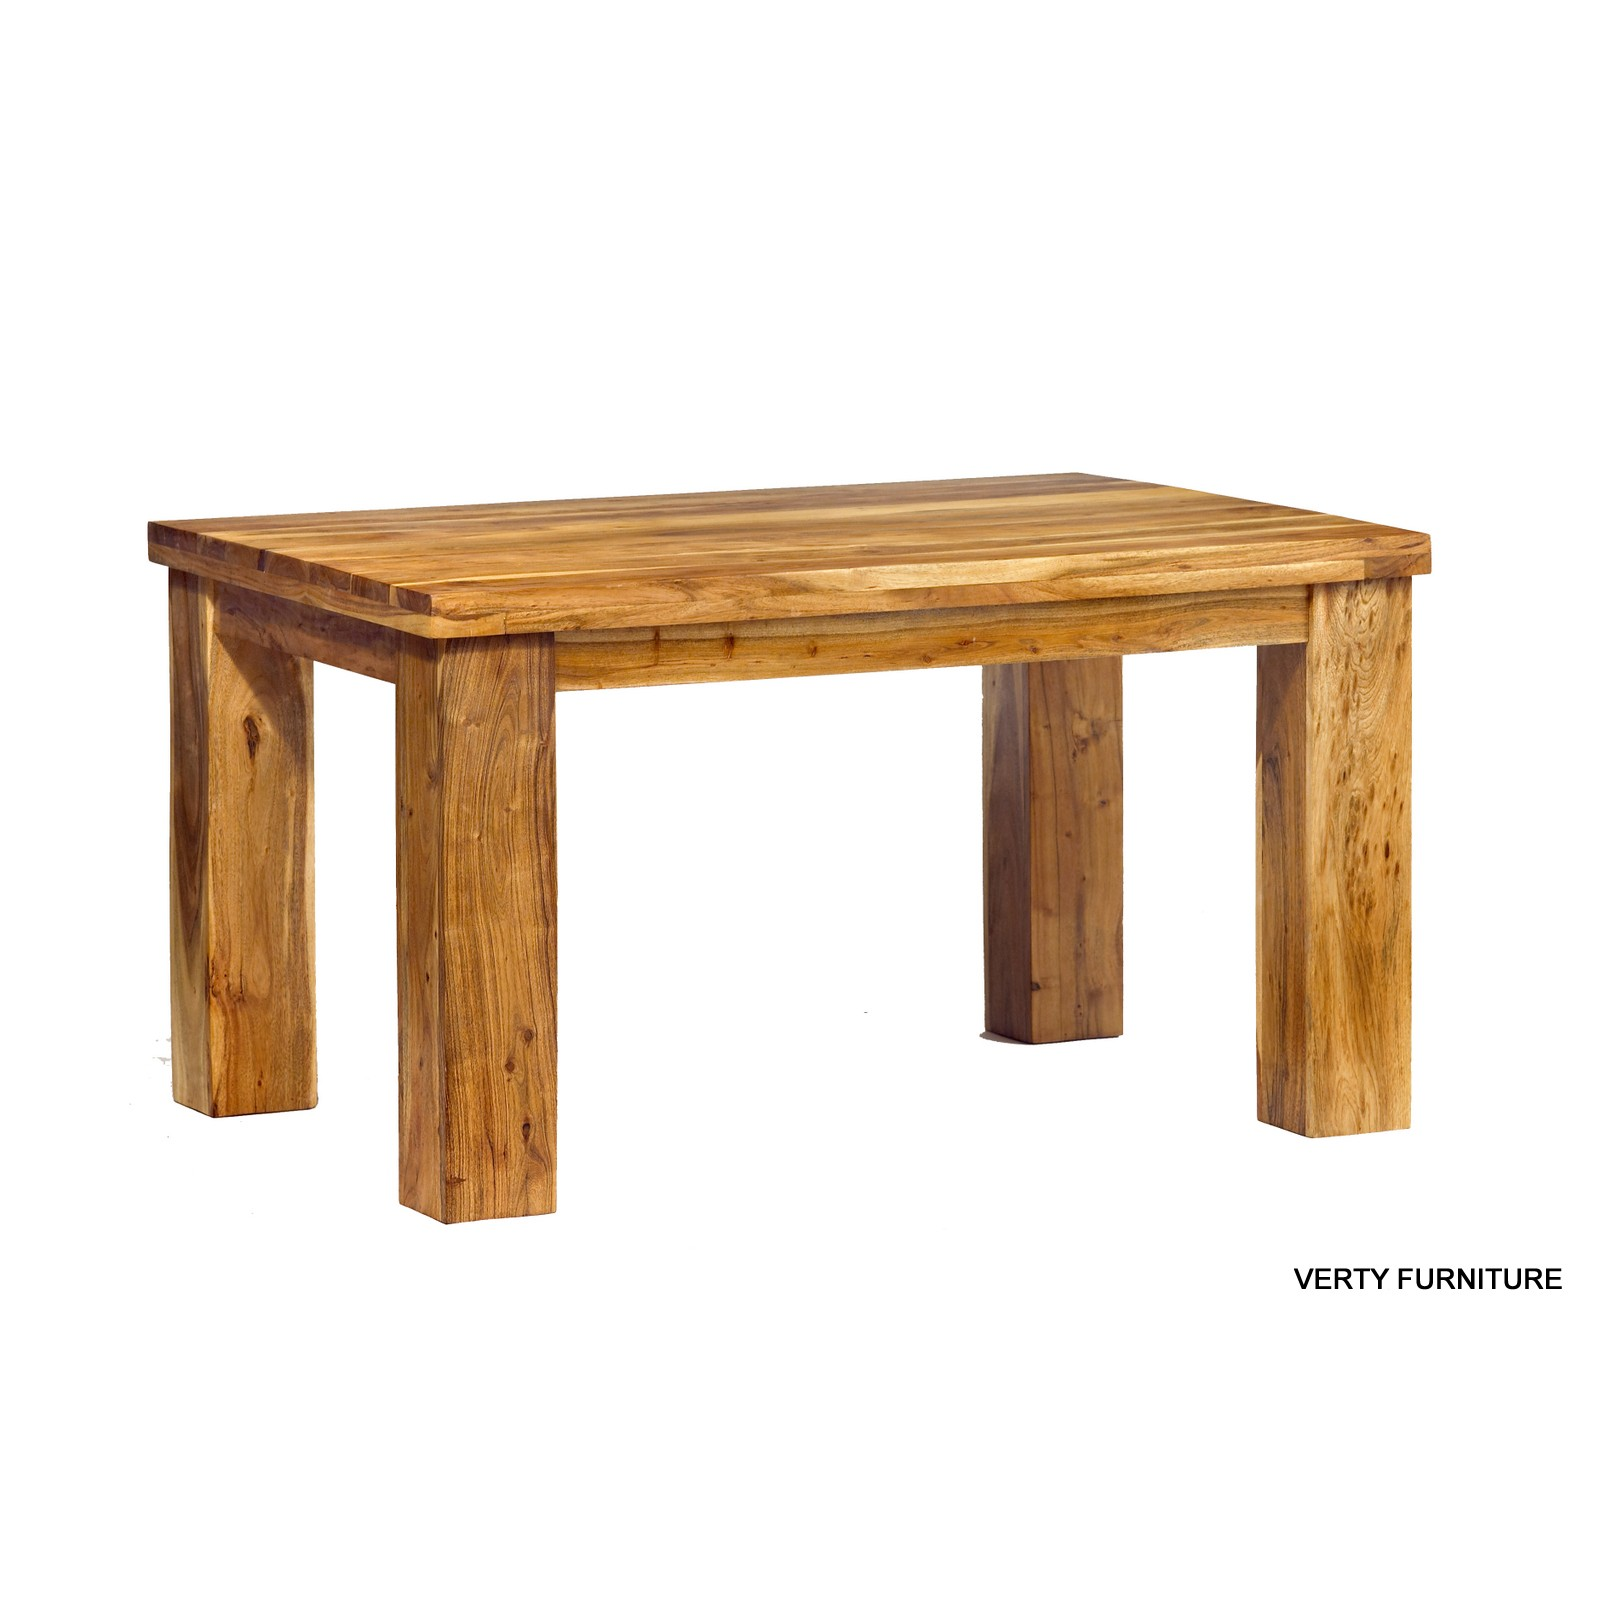 Small Dining Table For 4: Small With 4 Chairs